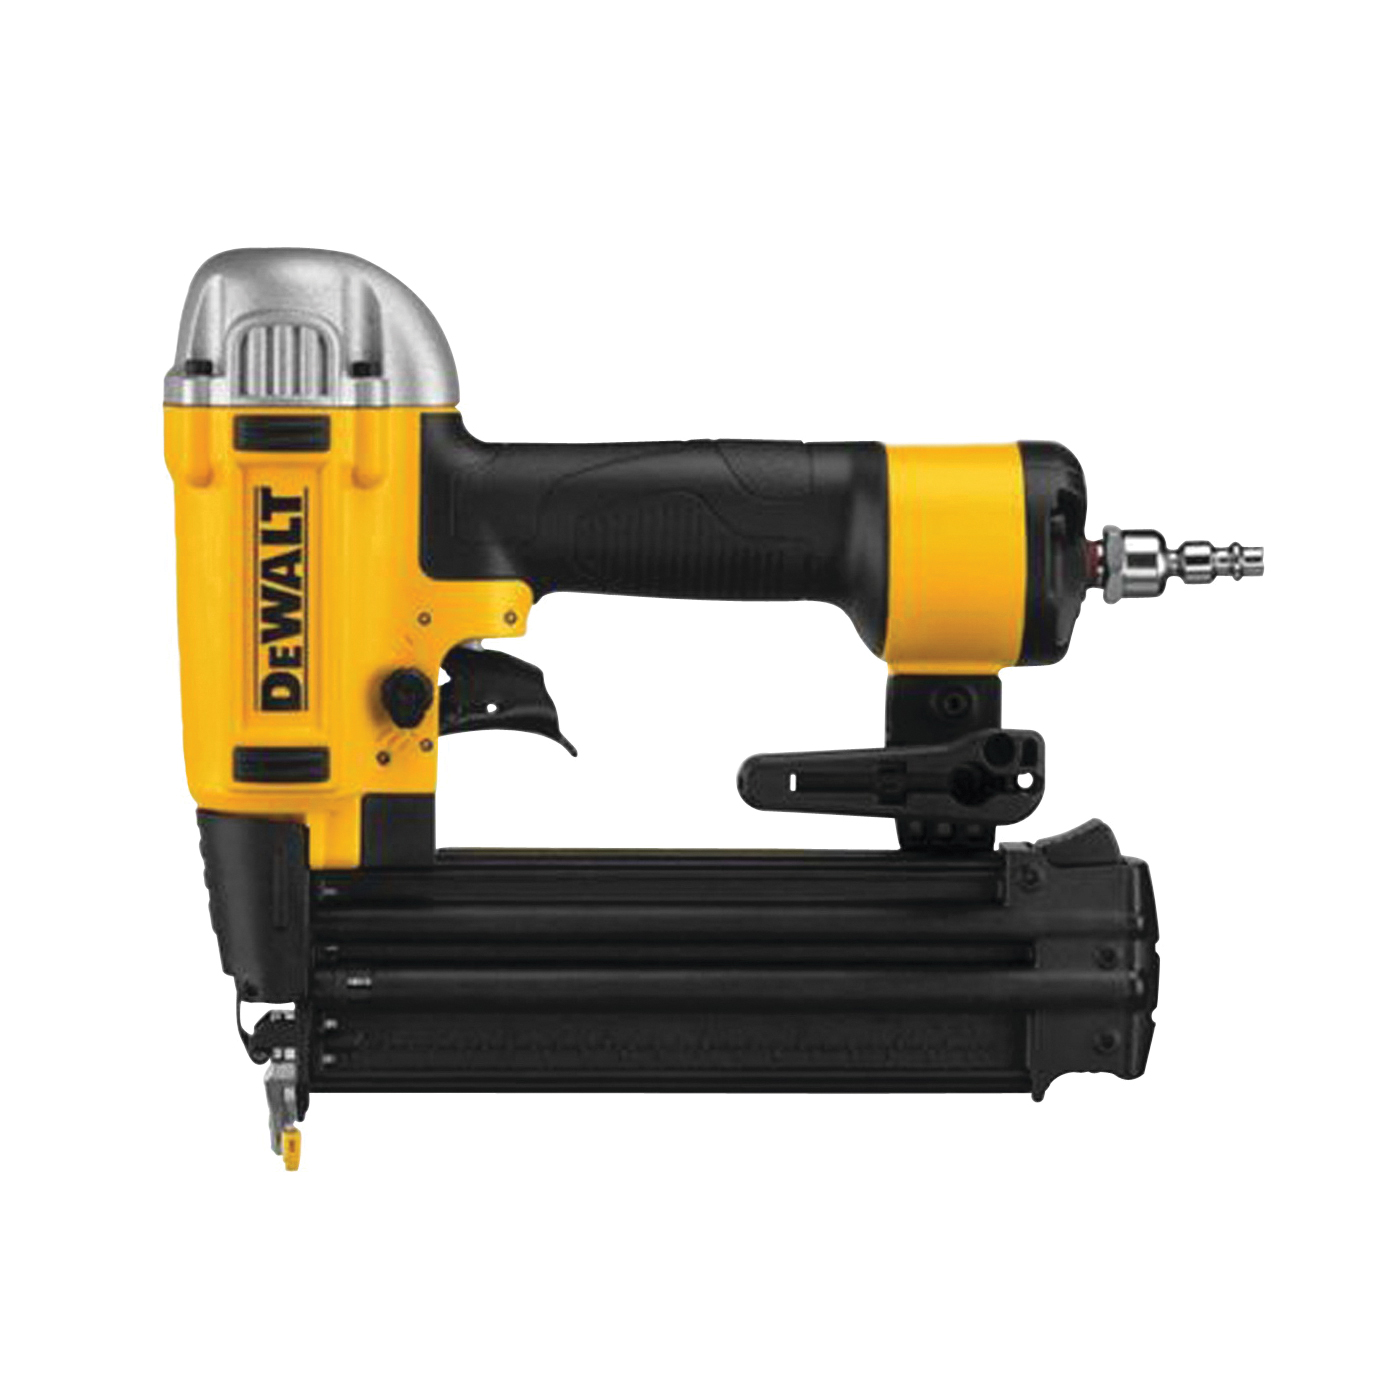 Picture of DeWALT PRECISION POINT DWFP12233 Brad Nailer, 100 Magazine, Glue Collation